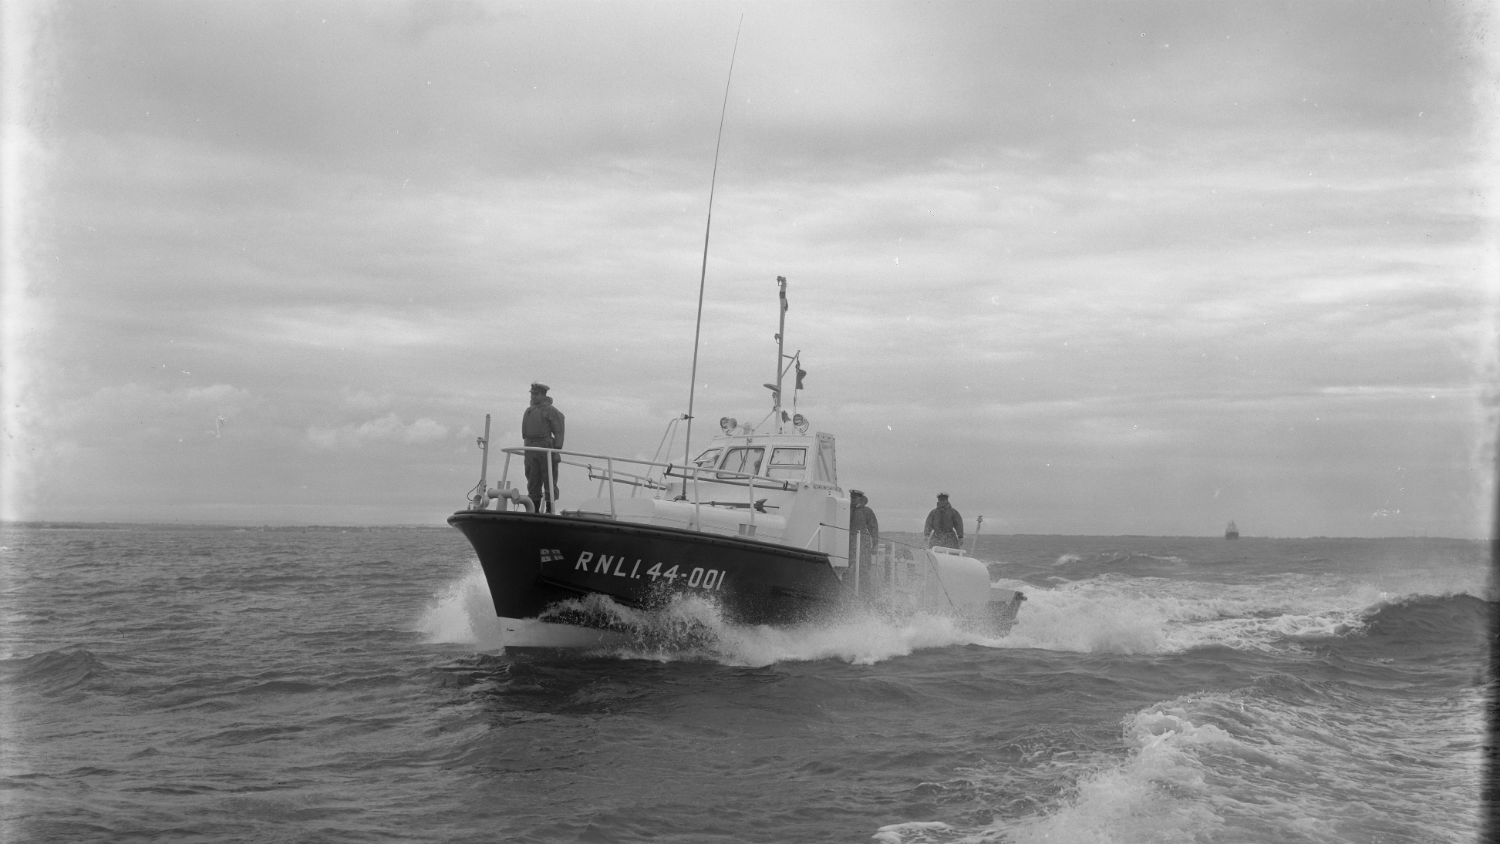 Black and white image of Reserve lifeboat (Falmouth), 44-001, while on trials